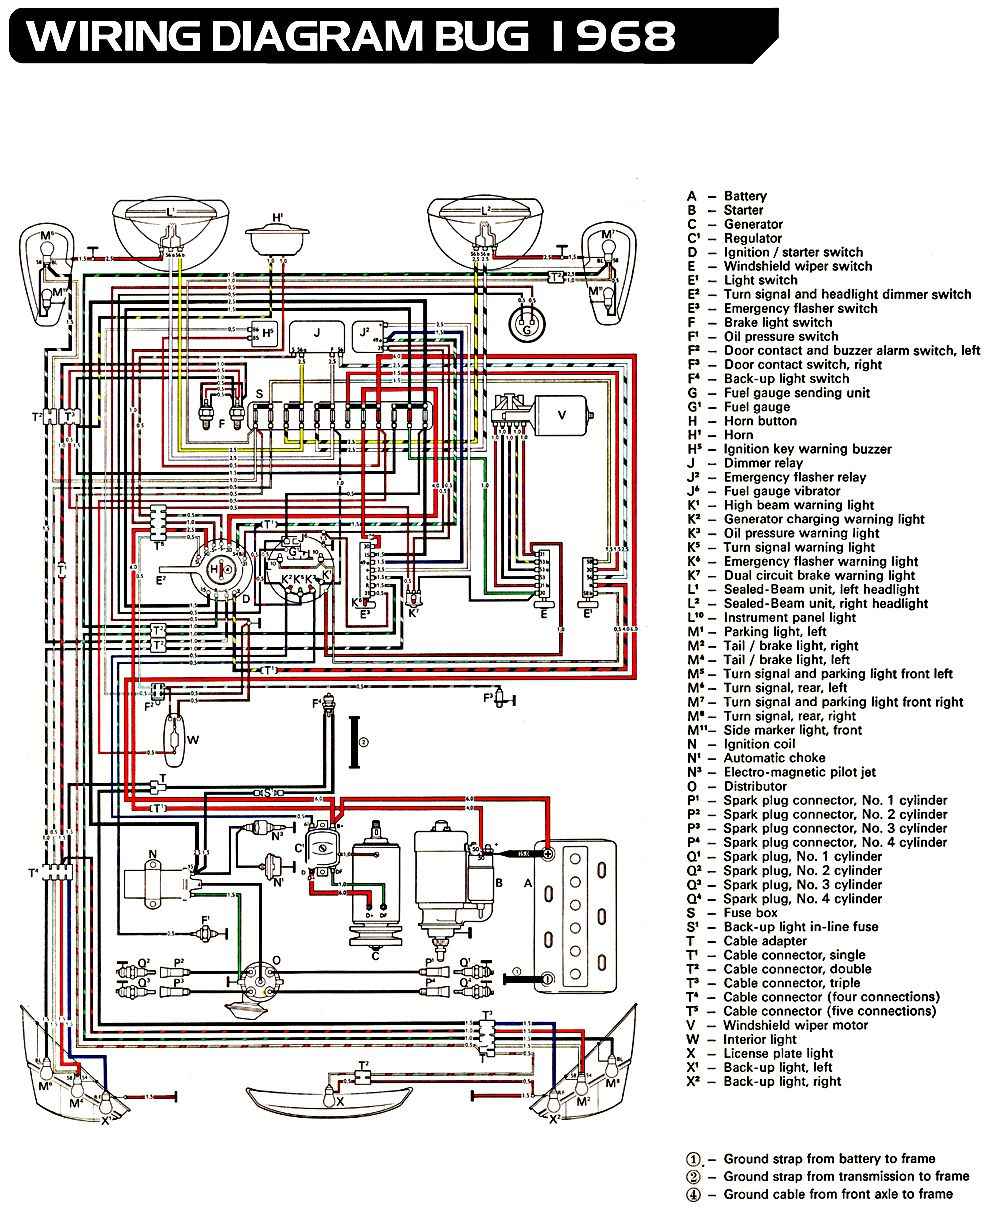 3a1908112d3826270ed5e3be362292bf vw bug ignition wiring diagram 73 vw wiring diagram free vw bug wiring diagram at mifinder.co